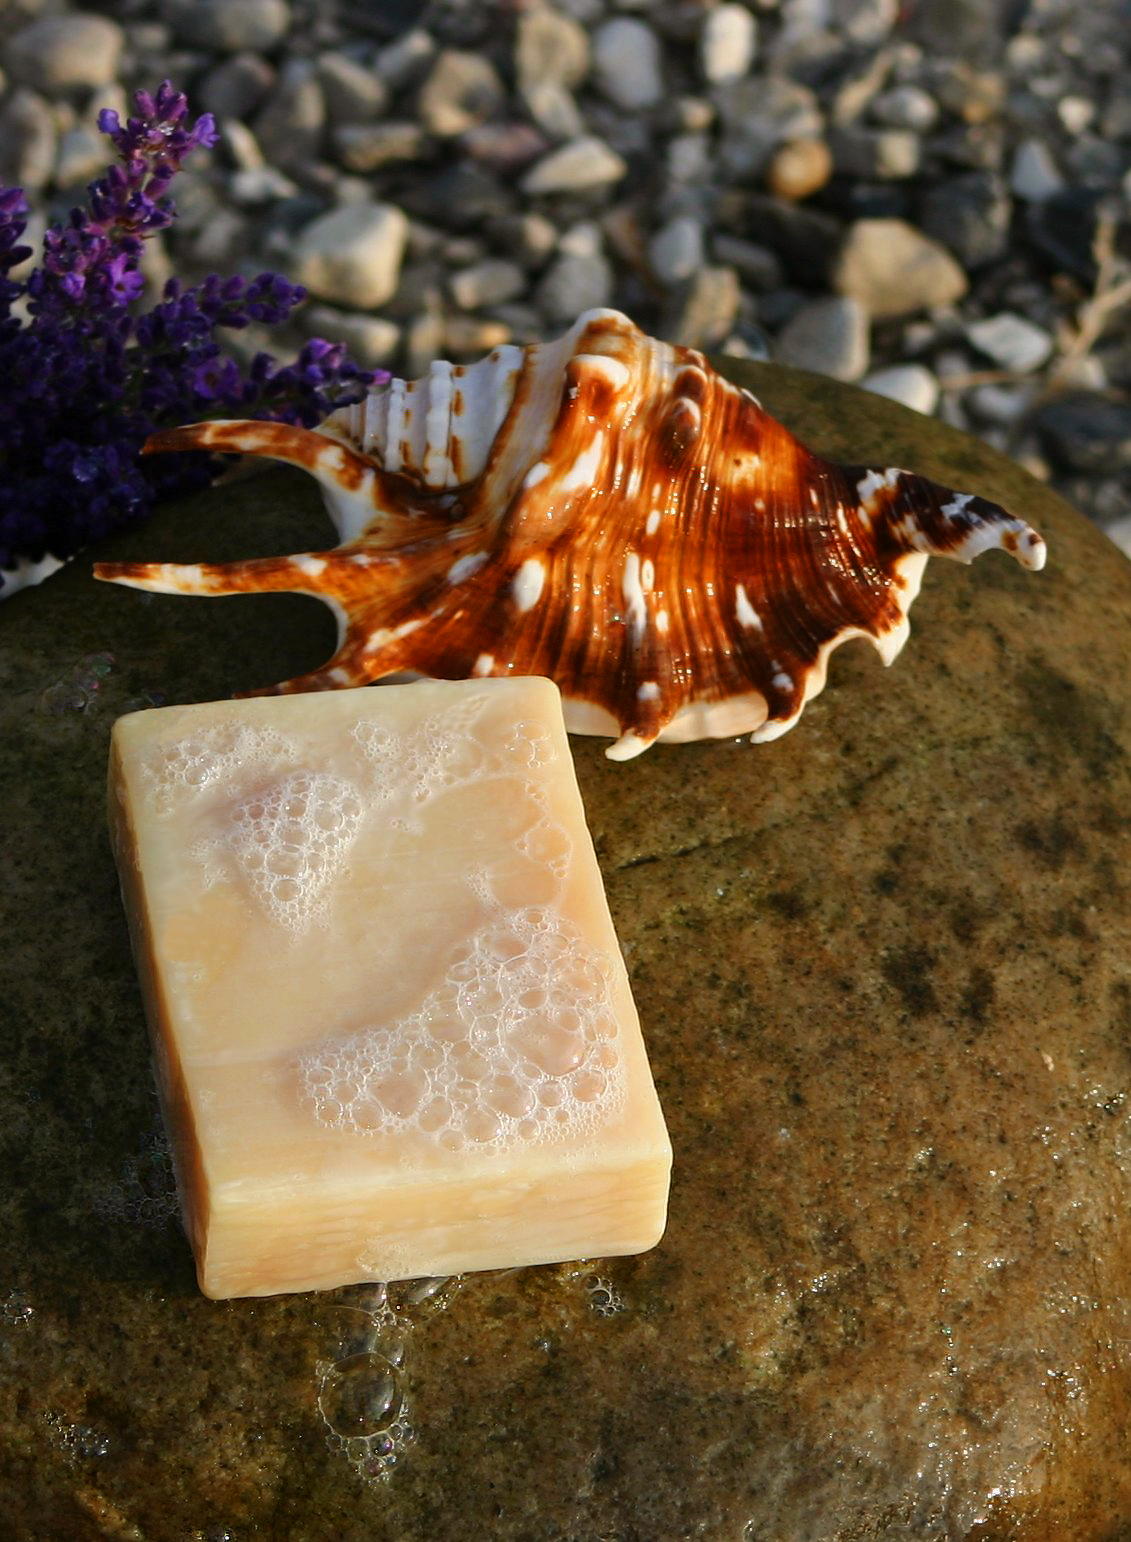 Handmade soap (Photo: Malene Thyssen)